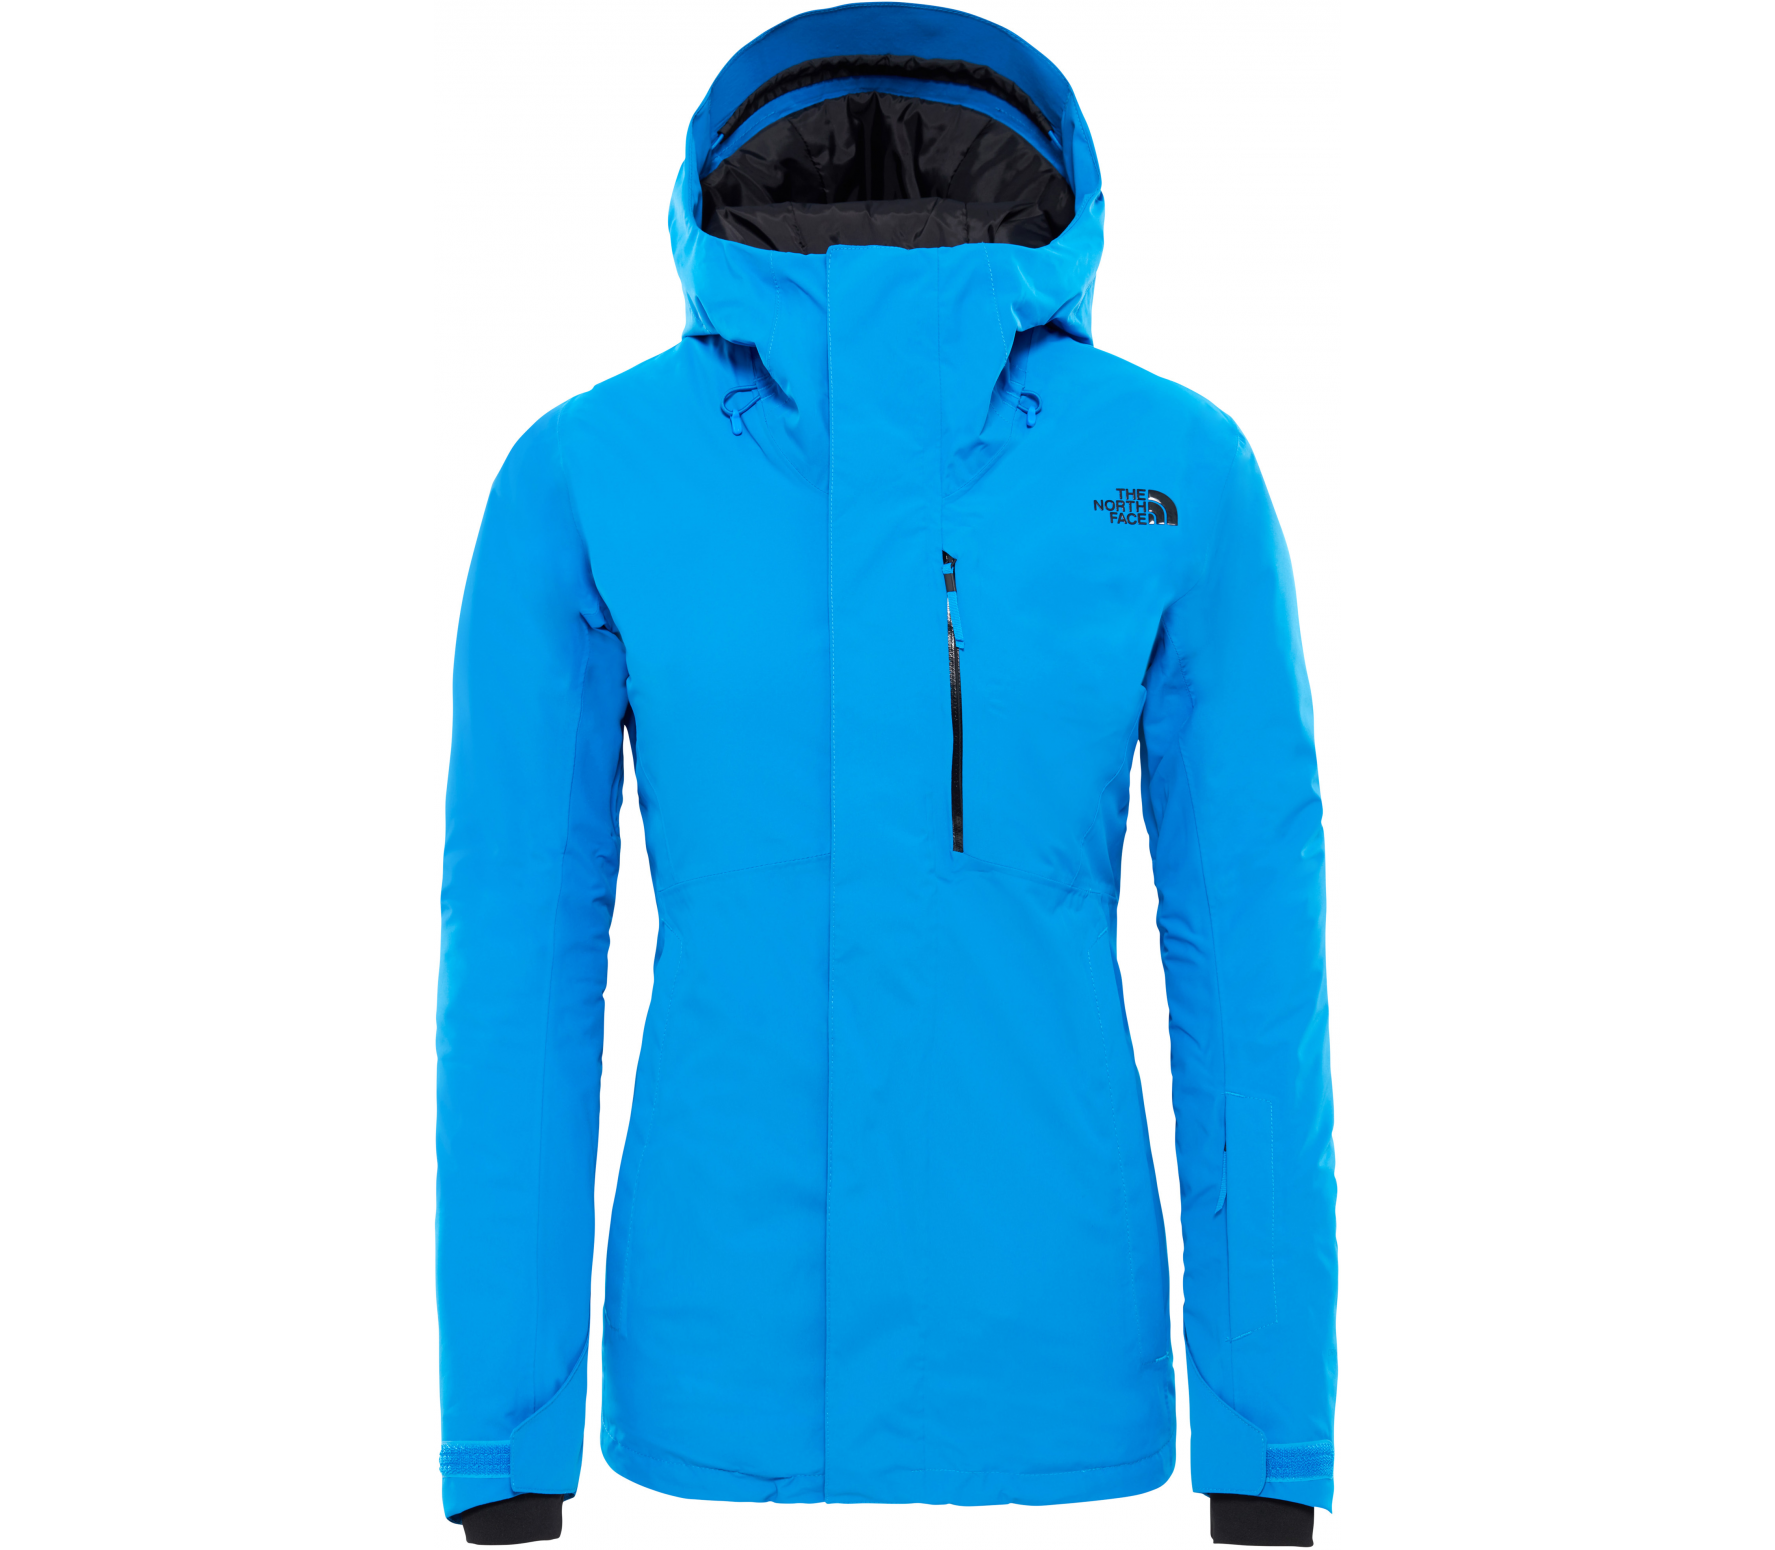 63150f6fdac8a3 The North Face - Descendit Damen Skijacke (blau) im Online Shop von ...